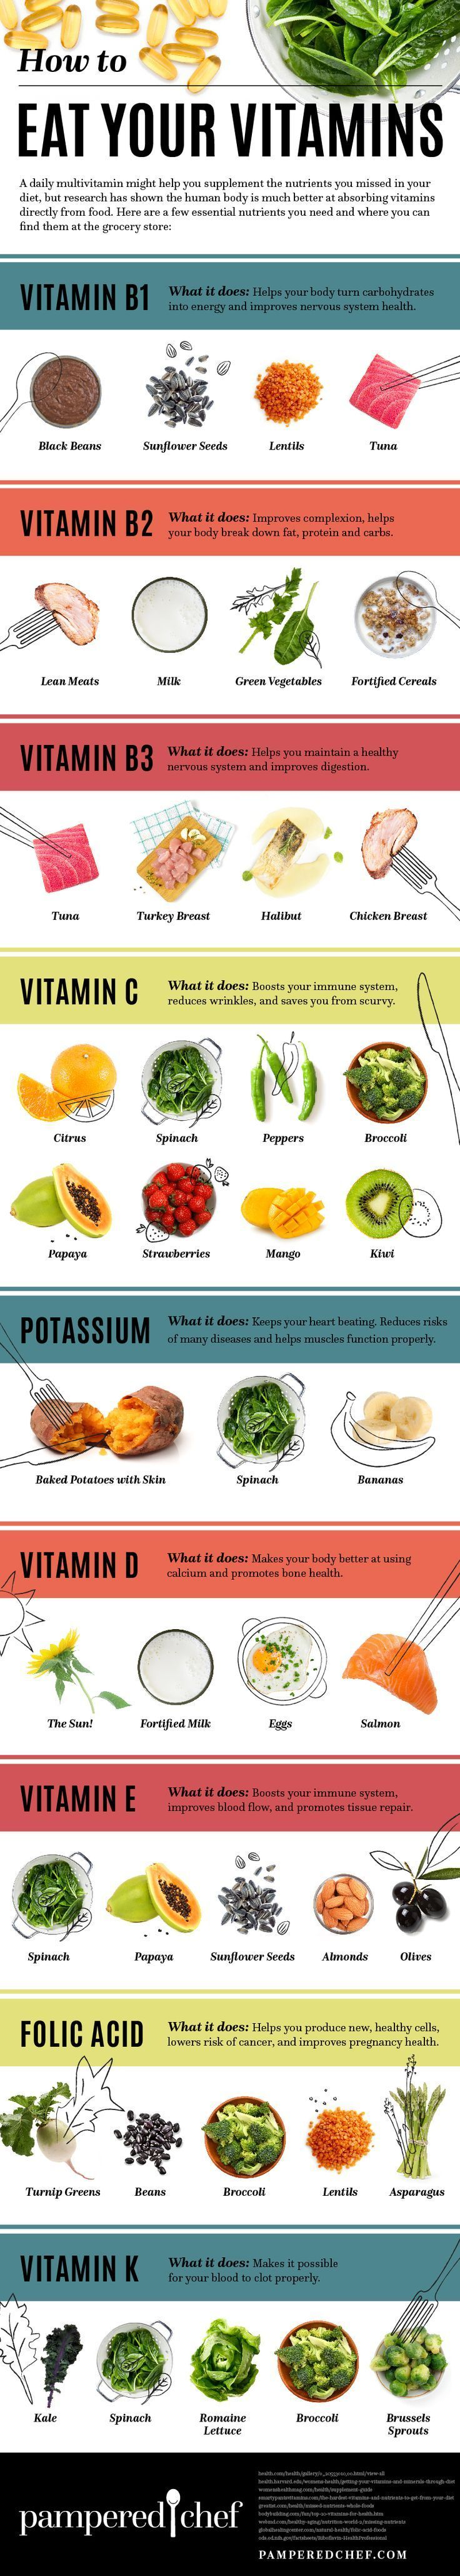 Your Vitamins Are you getting your vitamin D? How about E? Know what foods you can eat to be sure you're getting all your essential vitamins with this infographic.Are you getting your vitamin D? How about E? Know what foods you can eat to be sure you're getting all your essential vitamins with this infographic.